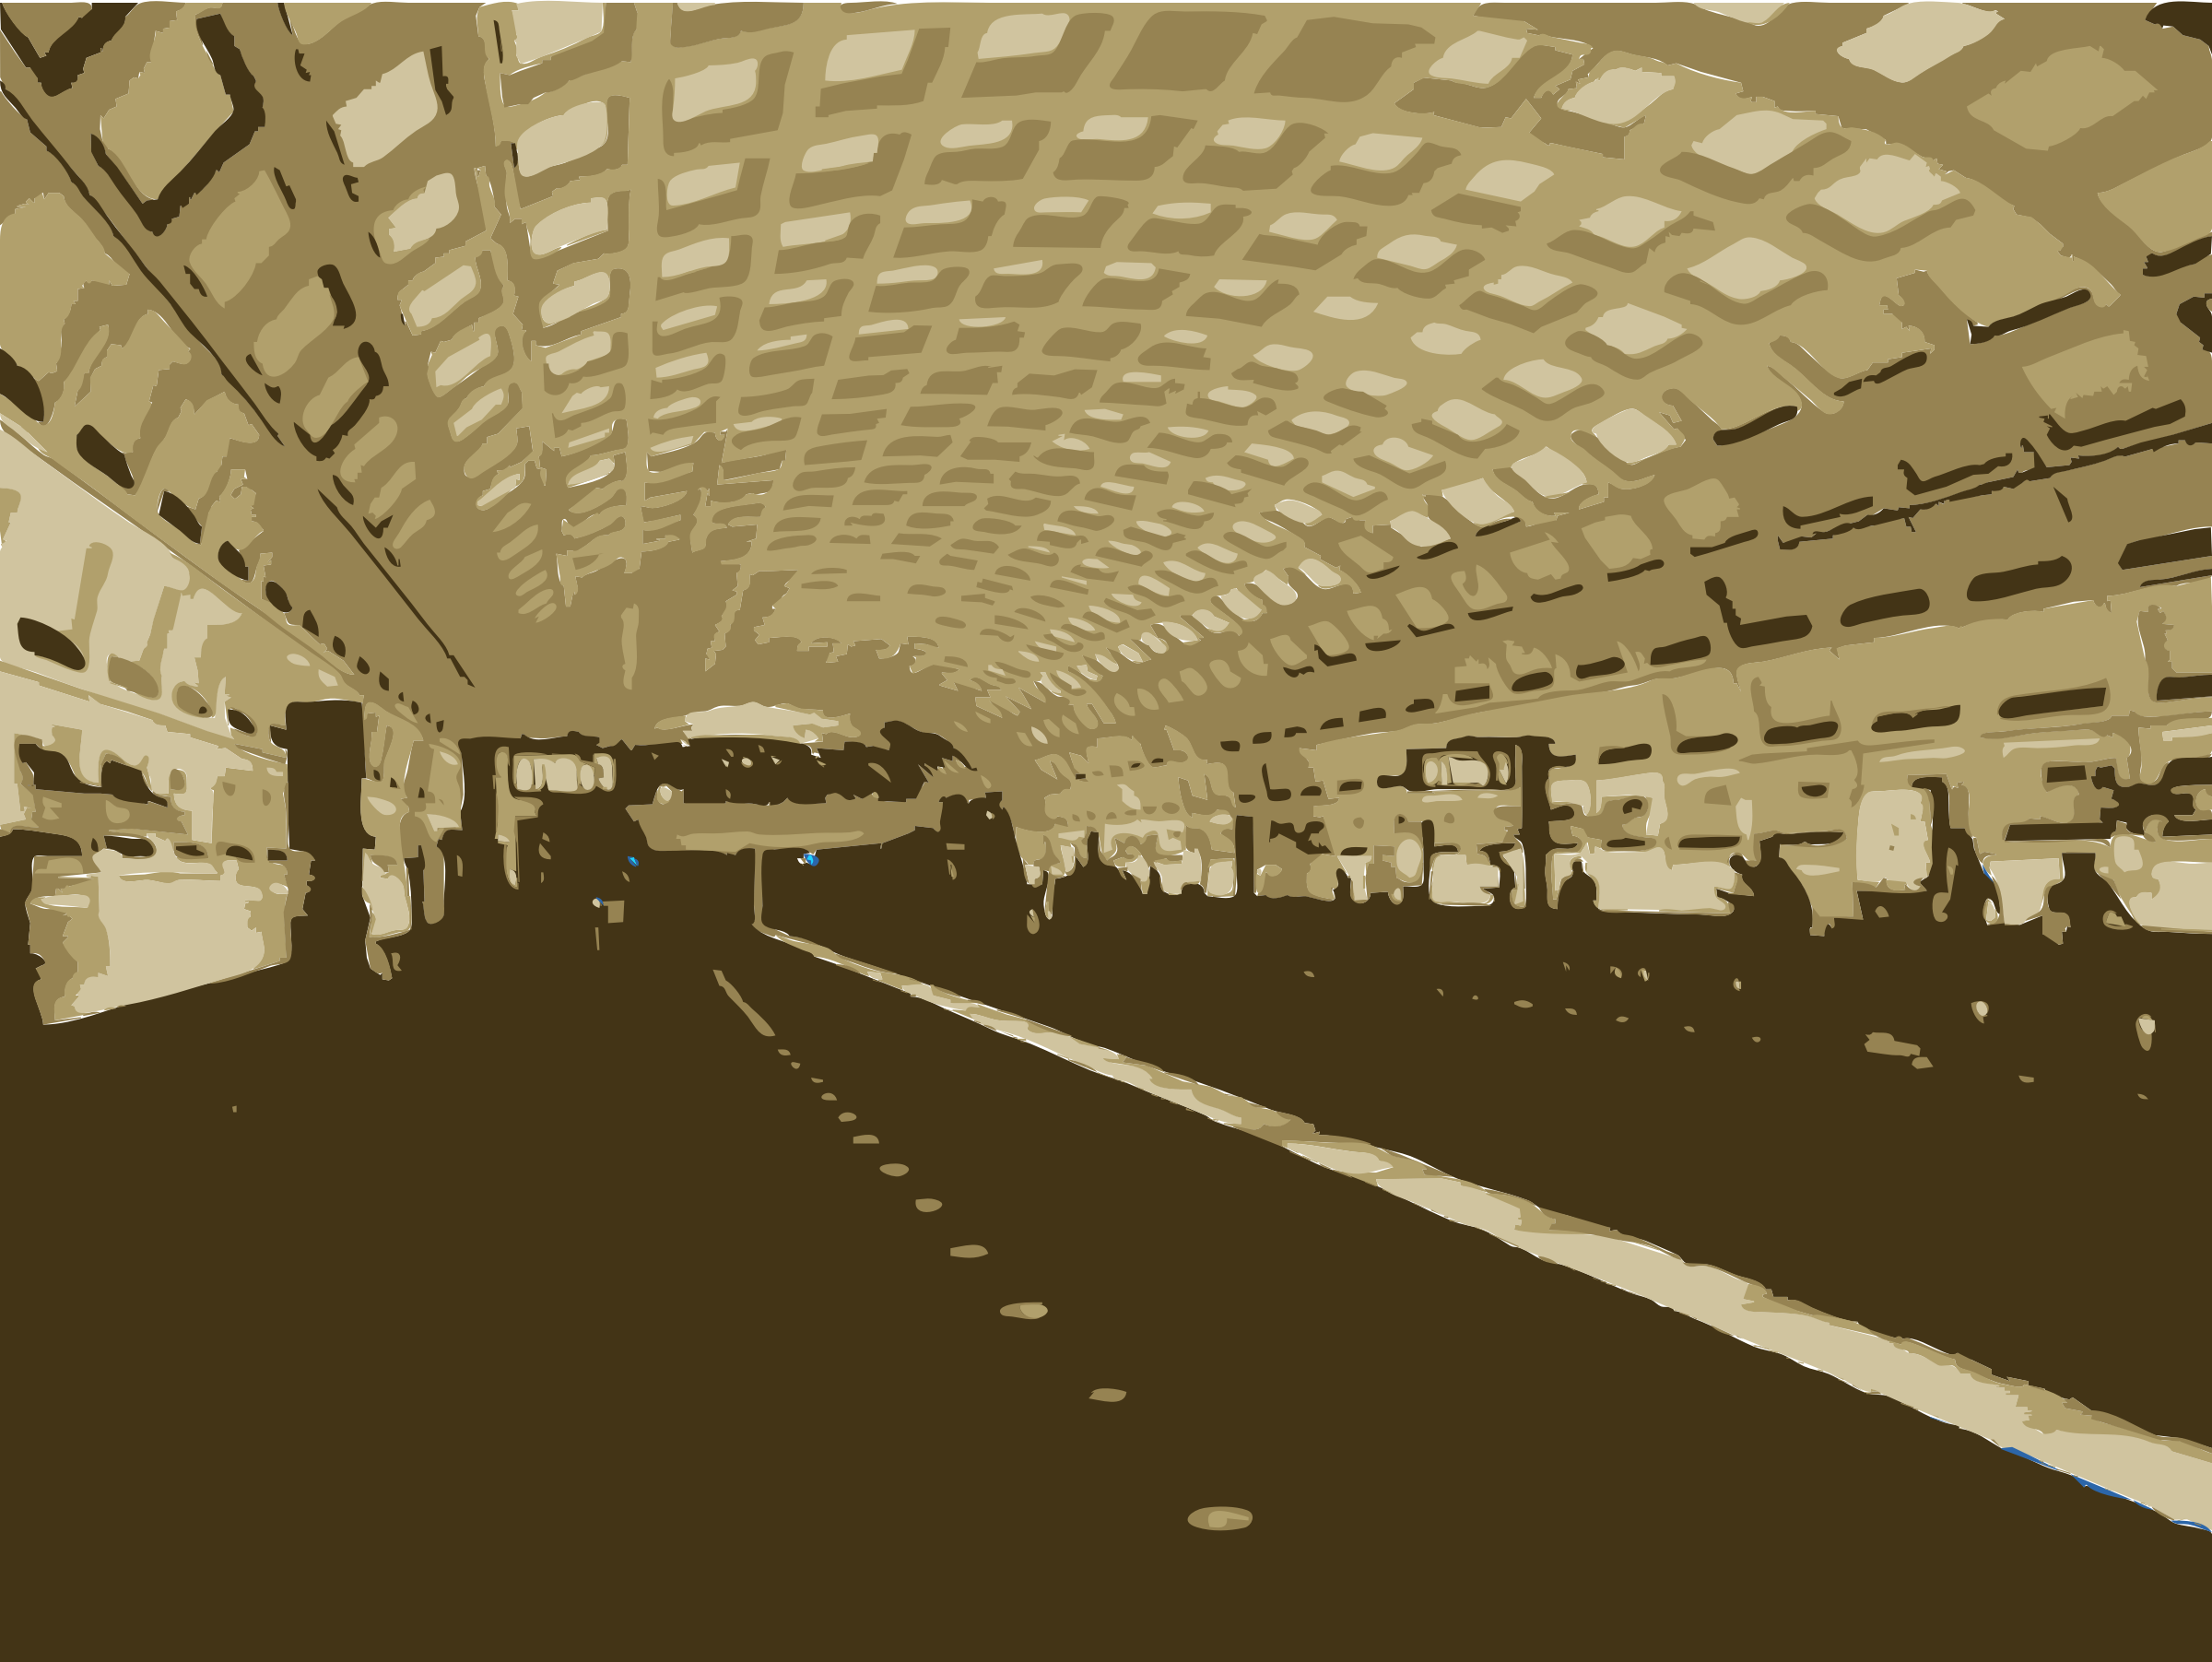 DC Train Station 2010-04-11 15.05.53 by rejon